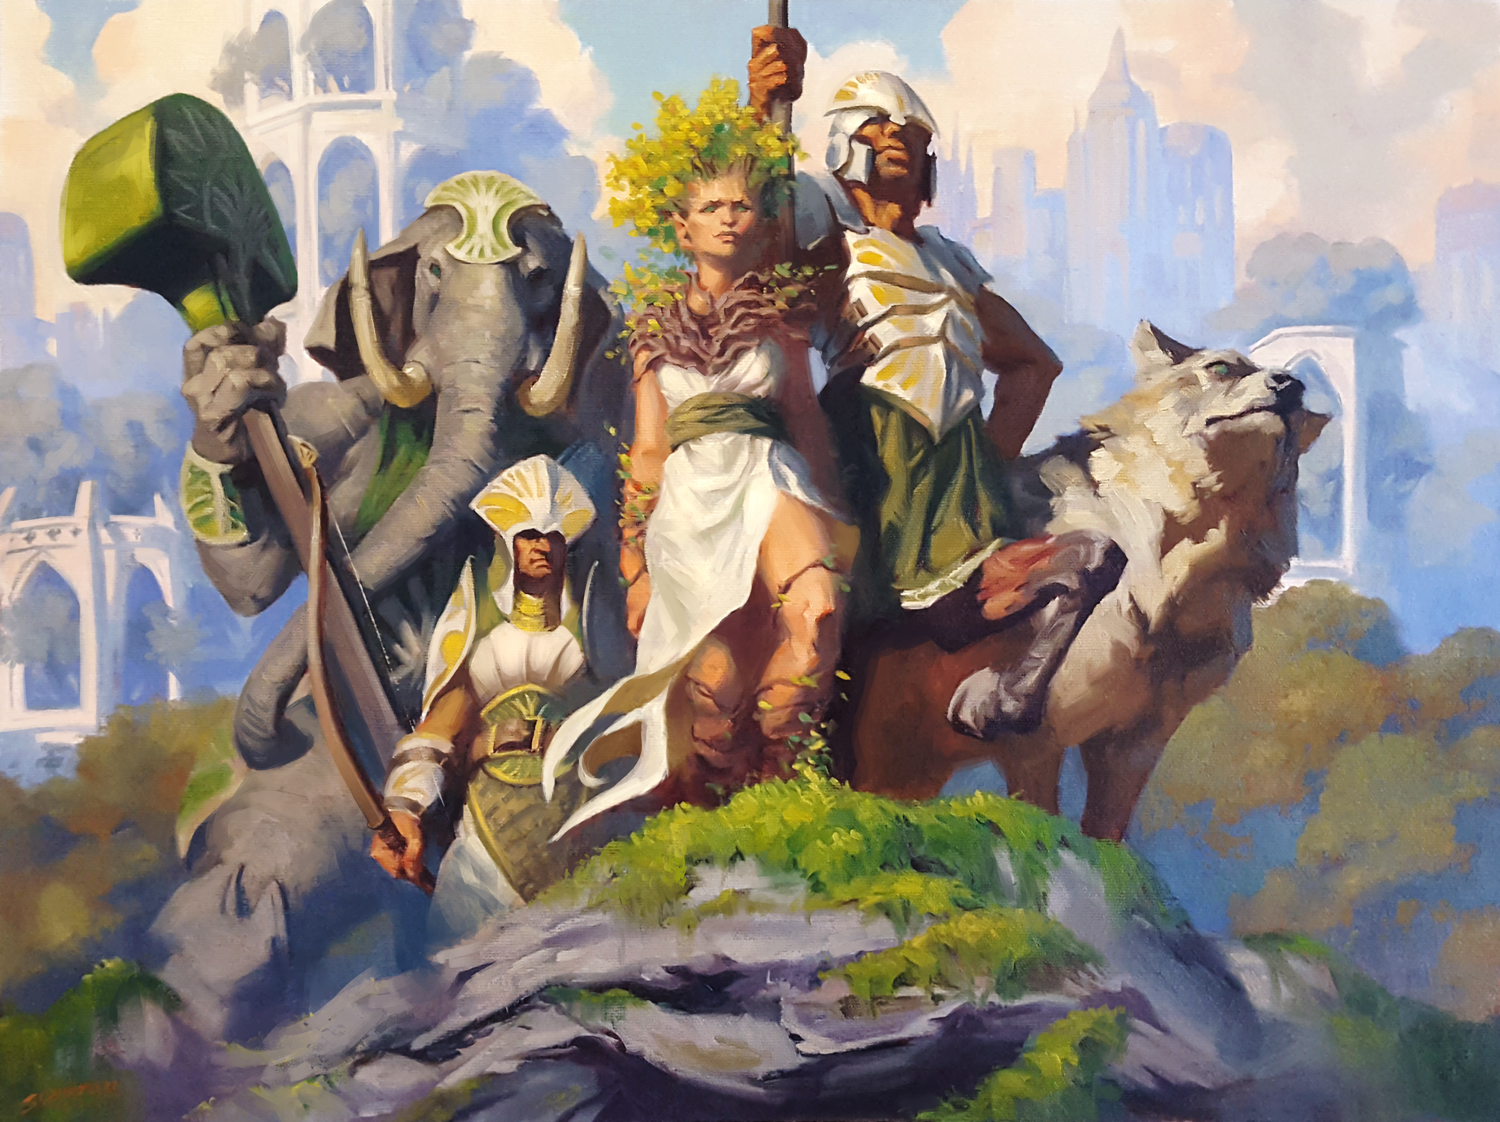 """Magic: The Gathering - Camaraderie Oil on 18x24"""" Canvas - Sold © Wizards of the Coast"""